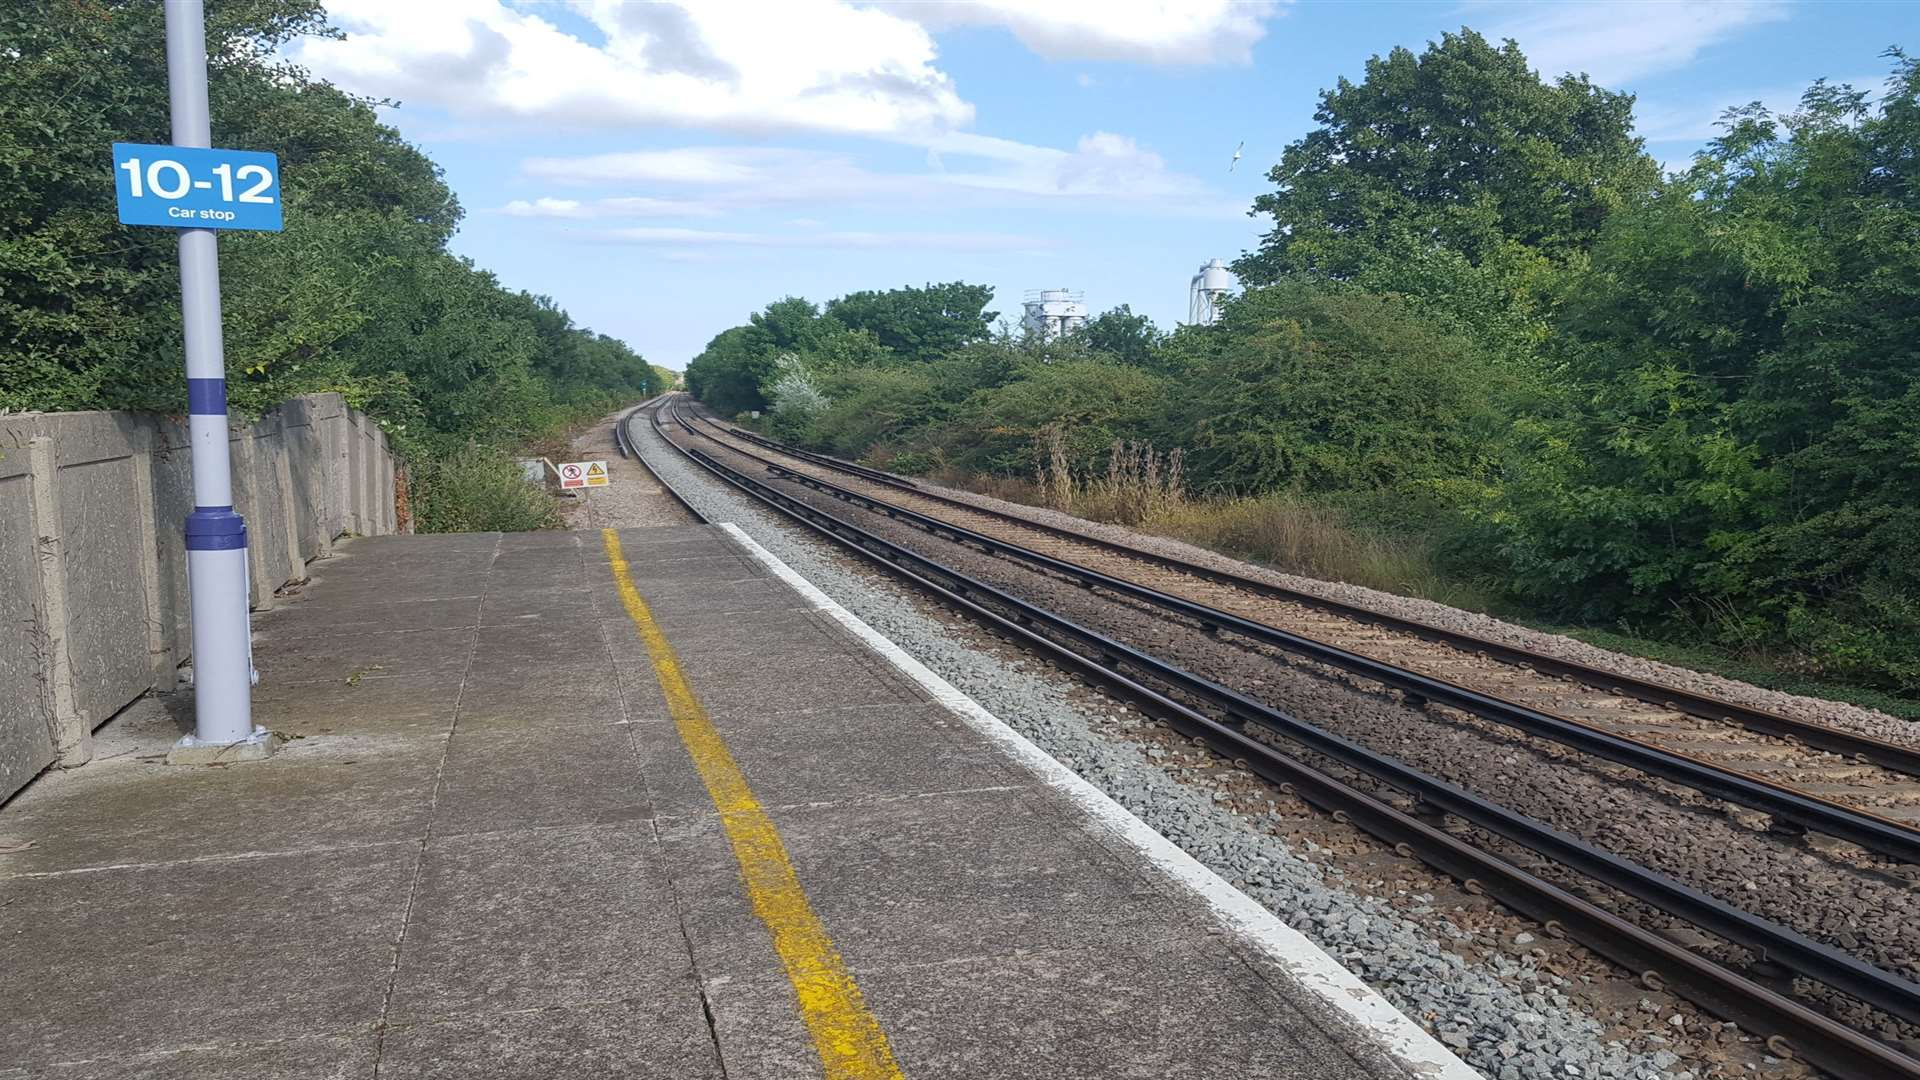 The scene from the platform at Herne Bay railway station near where Taiyah was found